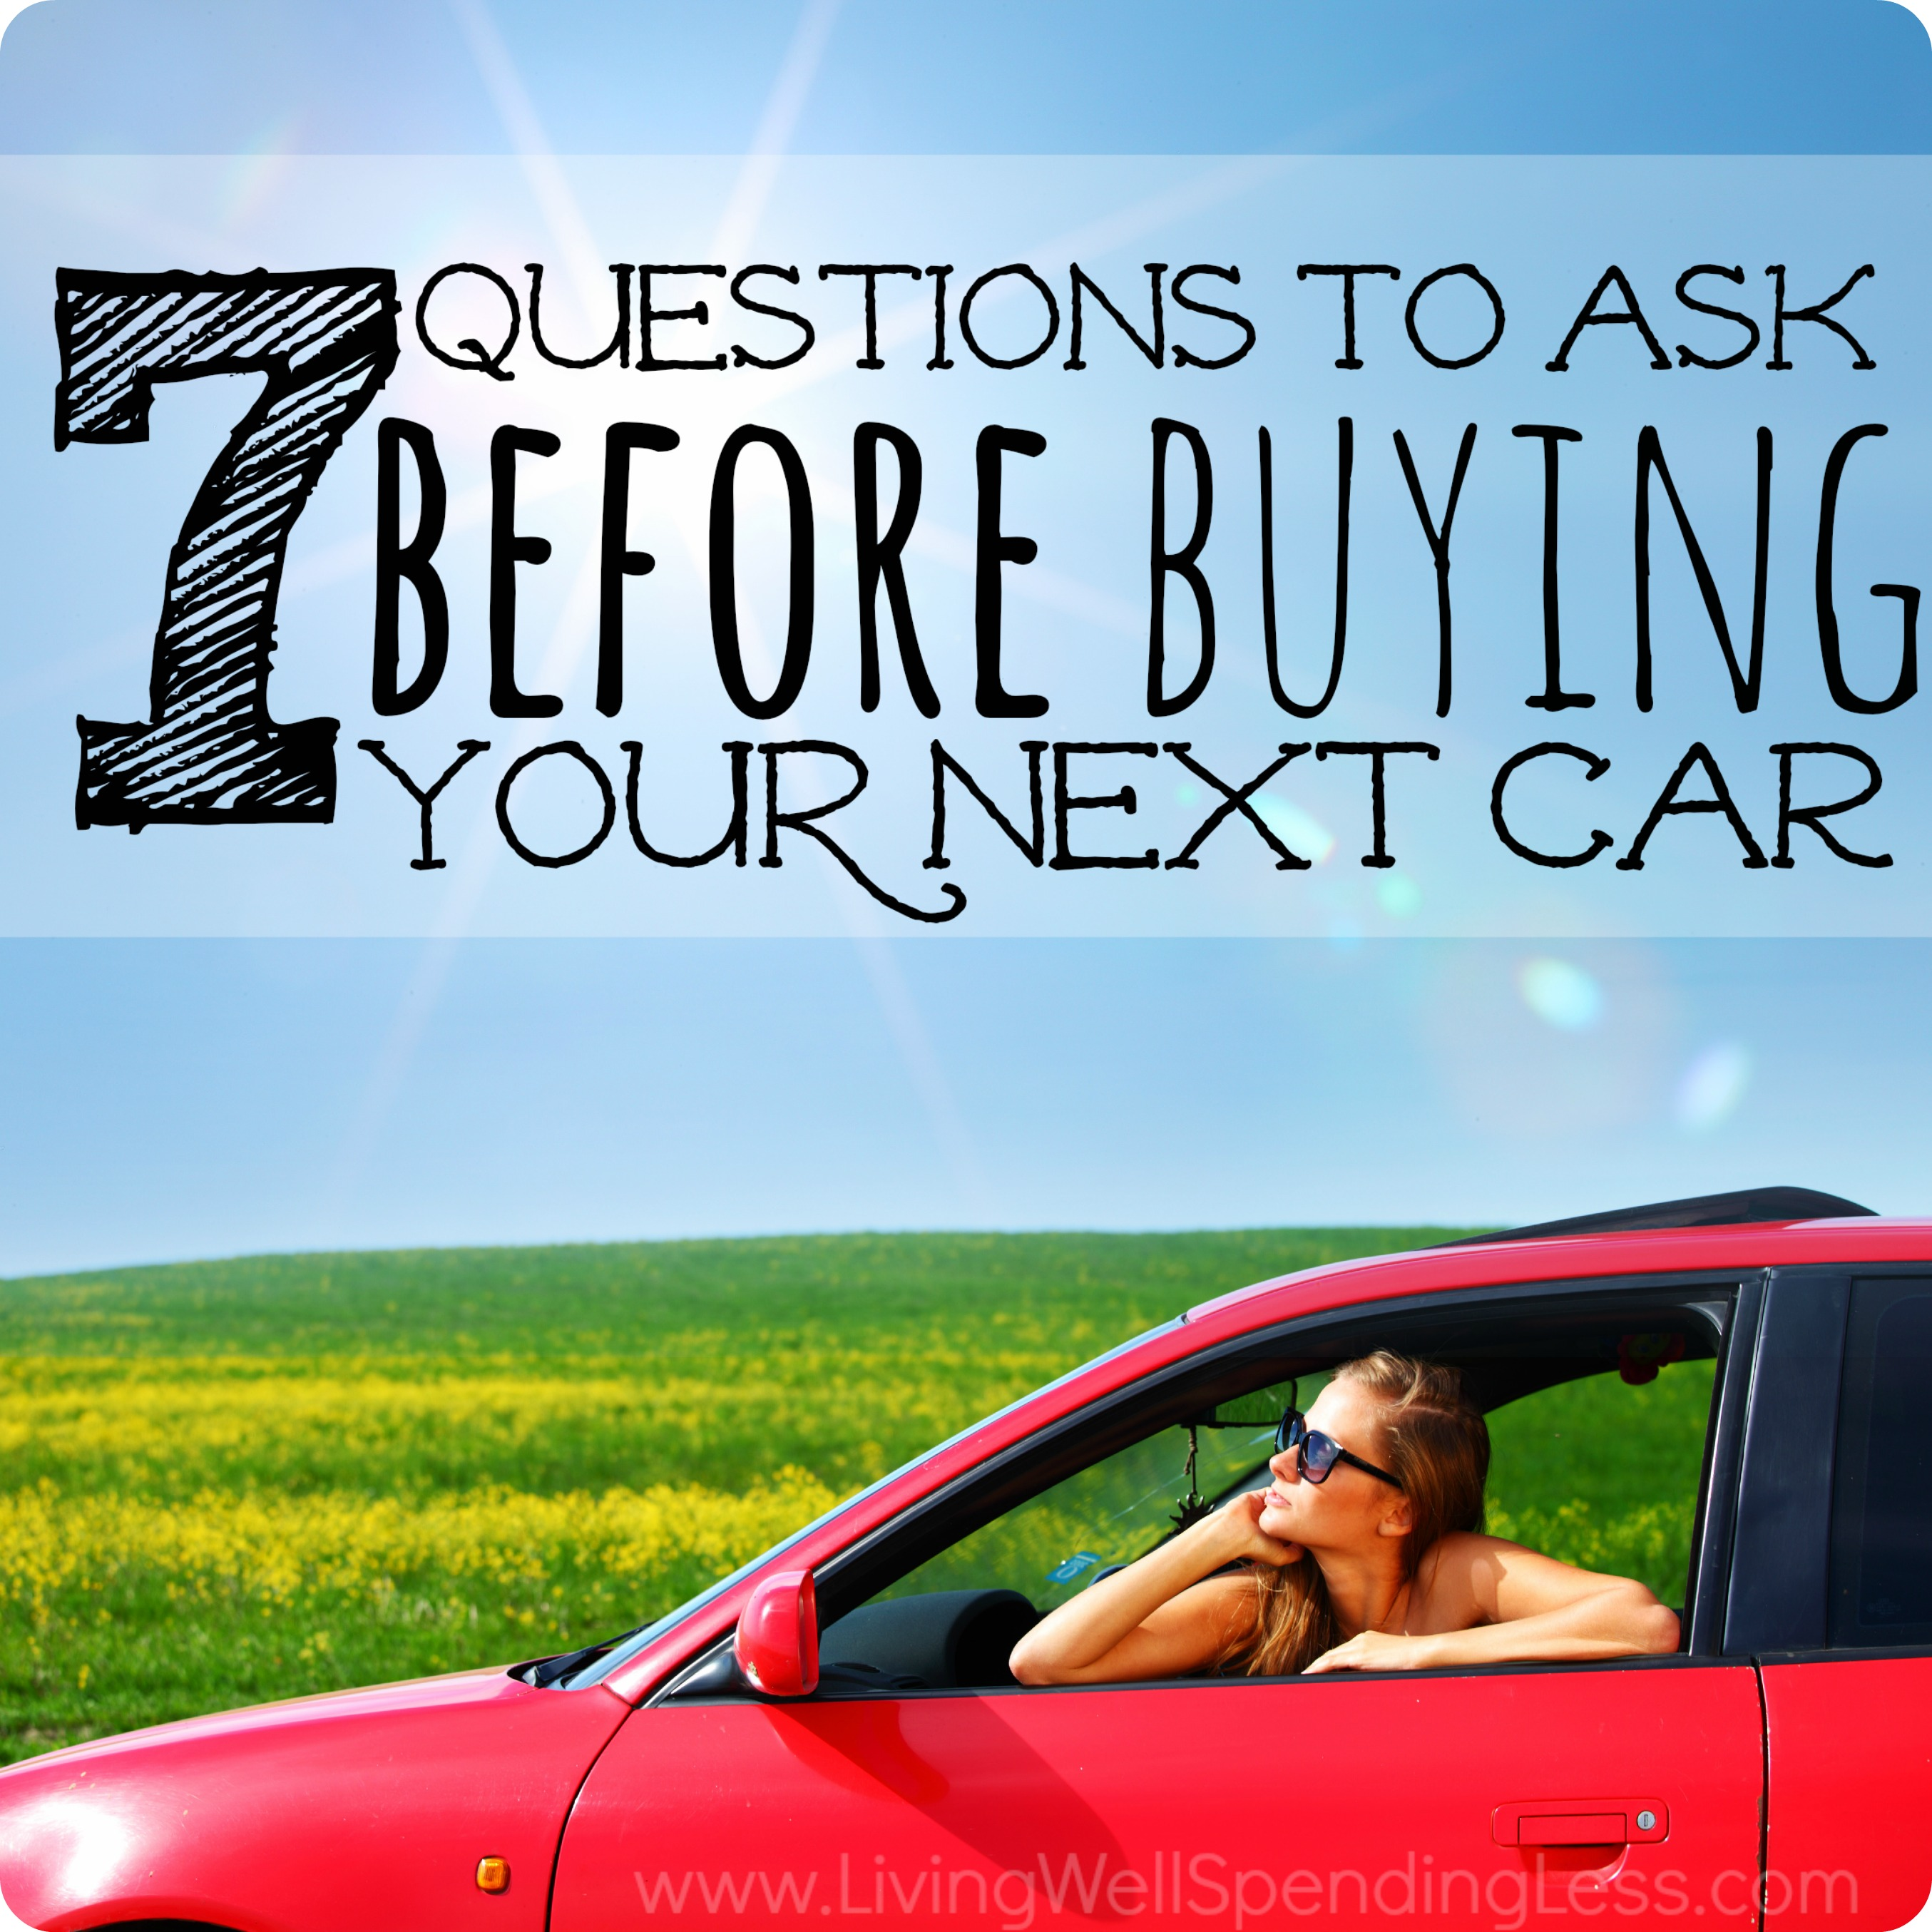 Buying Your Next Car | Tips Purchasing your Next Car Less | When to Buy Your Next Car